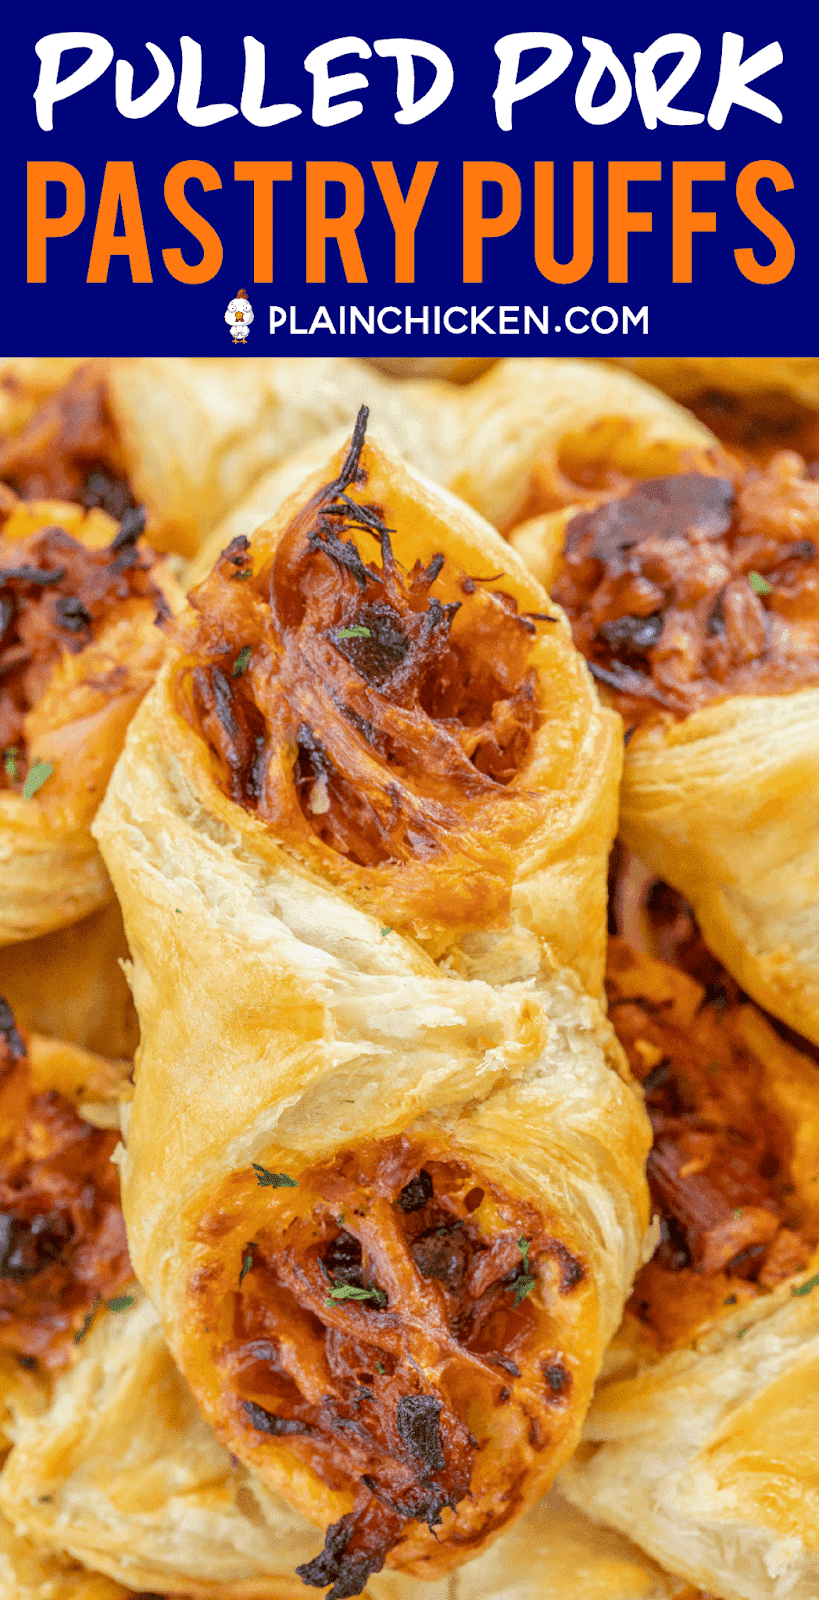 PULLED PORK PASTRY PUFFS RECIPE